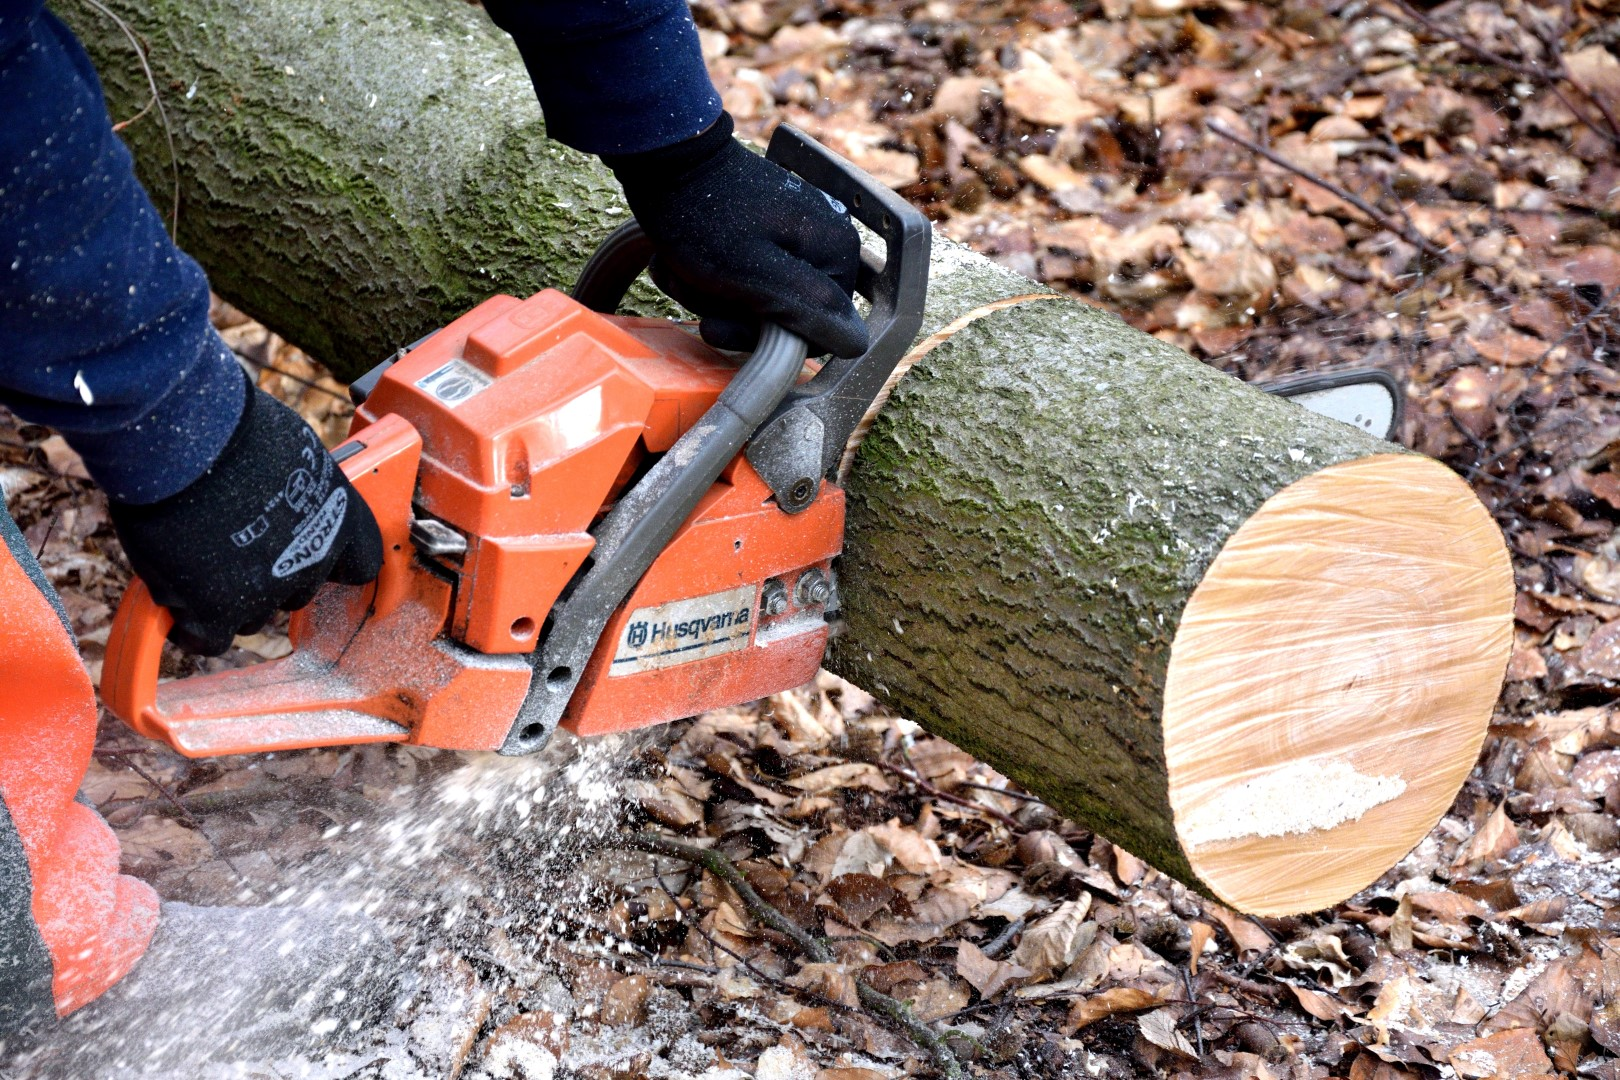 Canva - Cutting Wood, Lumberjack, Chainsaw, Woodworks